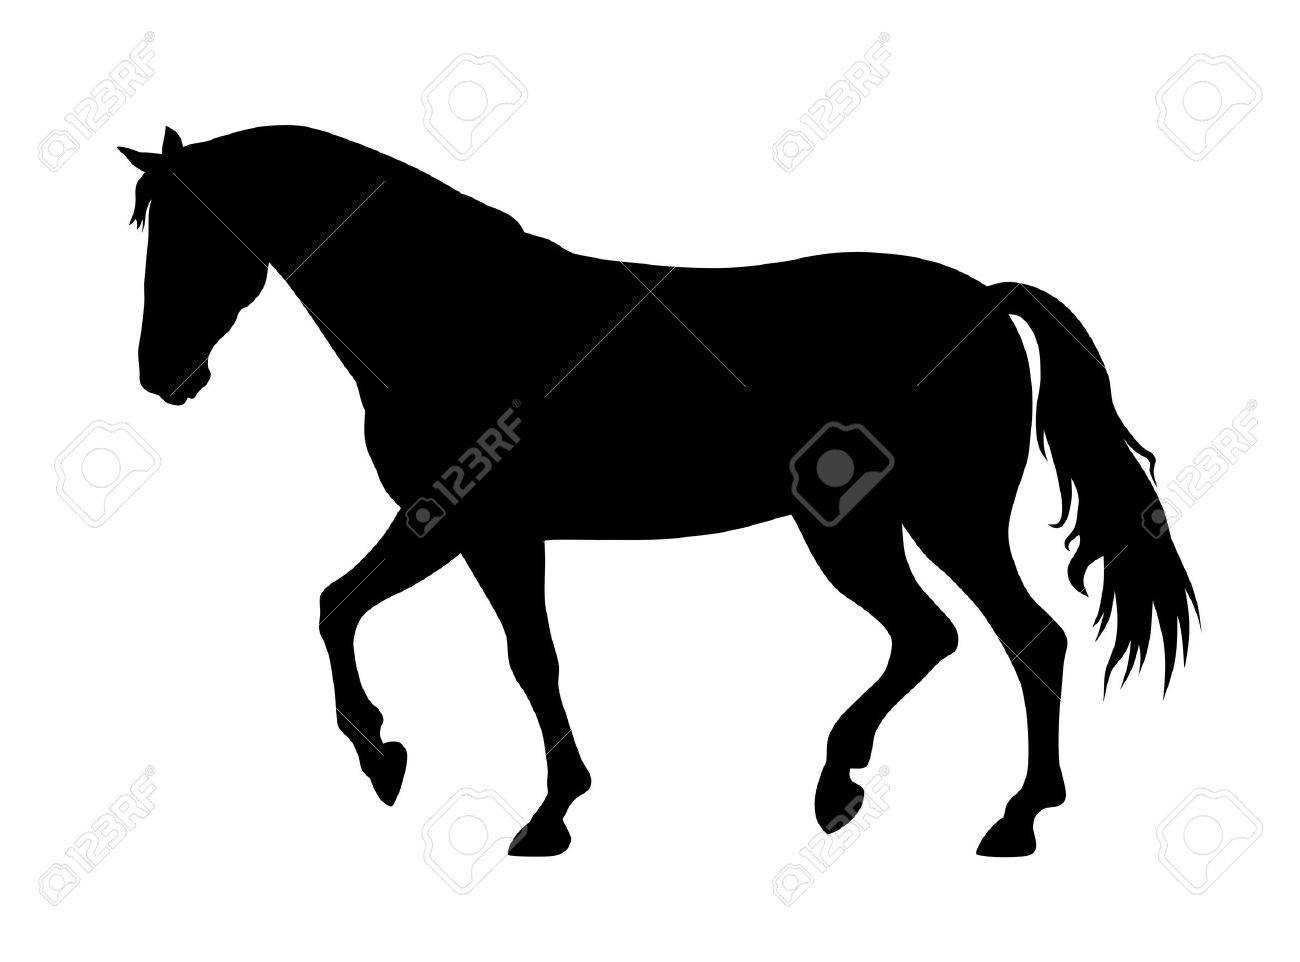 Vector Illustration Of Running Horse Silhouette Royalty Free Cliparts Vectors And Stock Illustration Image 37862018